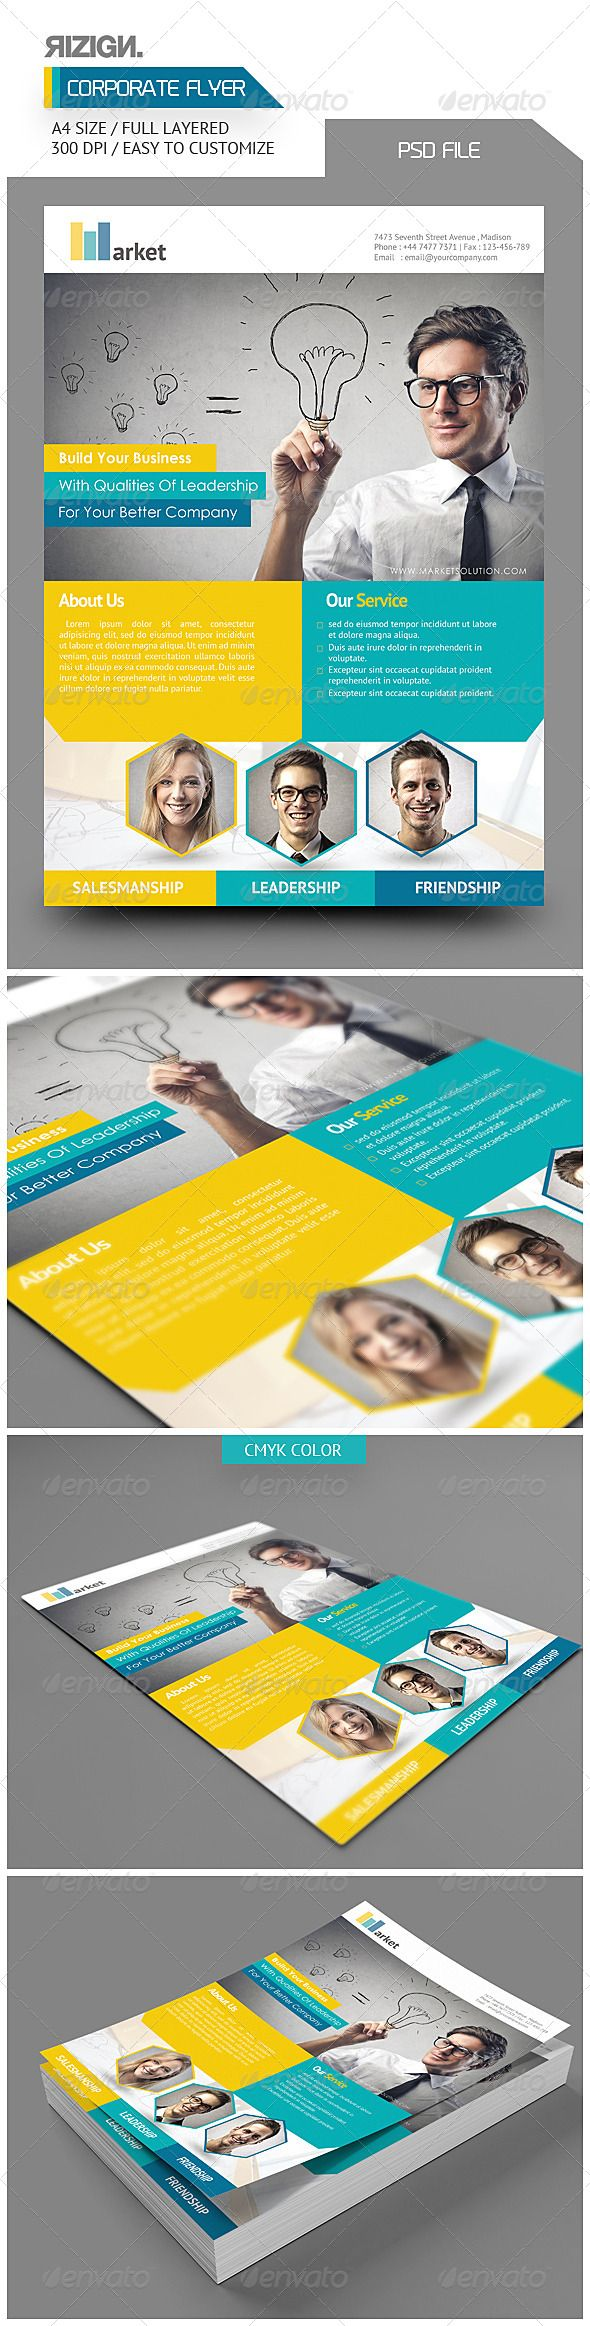 Corporate Flyer  #GraphicRiver           Corporate Flyer   PSD File   Easy To Customize  All Text Editable With Text Tool  A4  Userguide available in package download 	 Images not include  Image Link : photodune /item/smiling-portraits/4276142 Image Link : photodune /item/idea/4817954  	 Font Used :    Century Gothic  PT Sans 	 Download link font available in package download